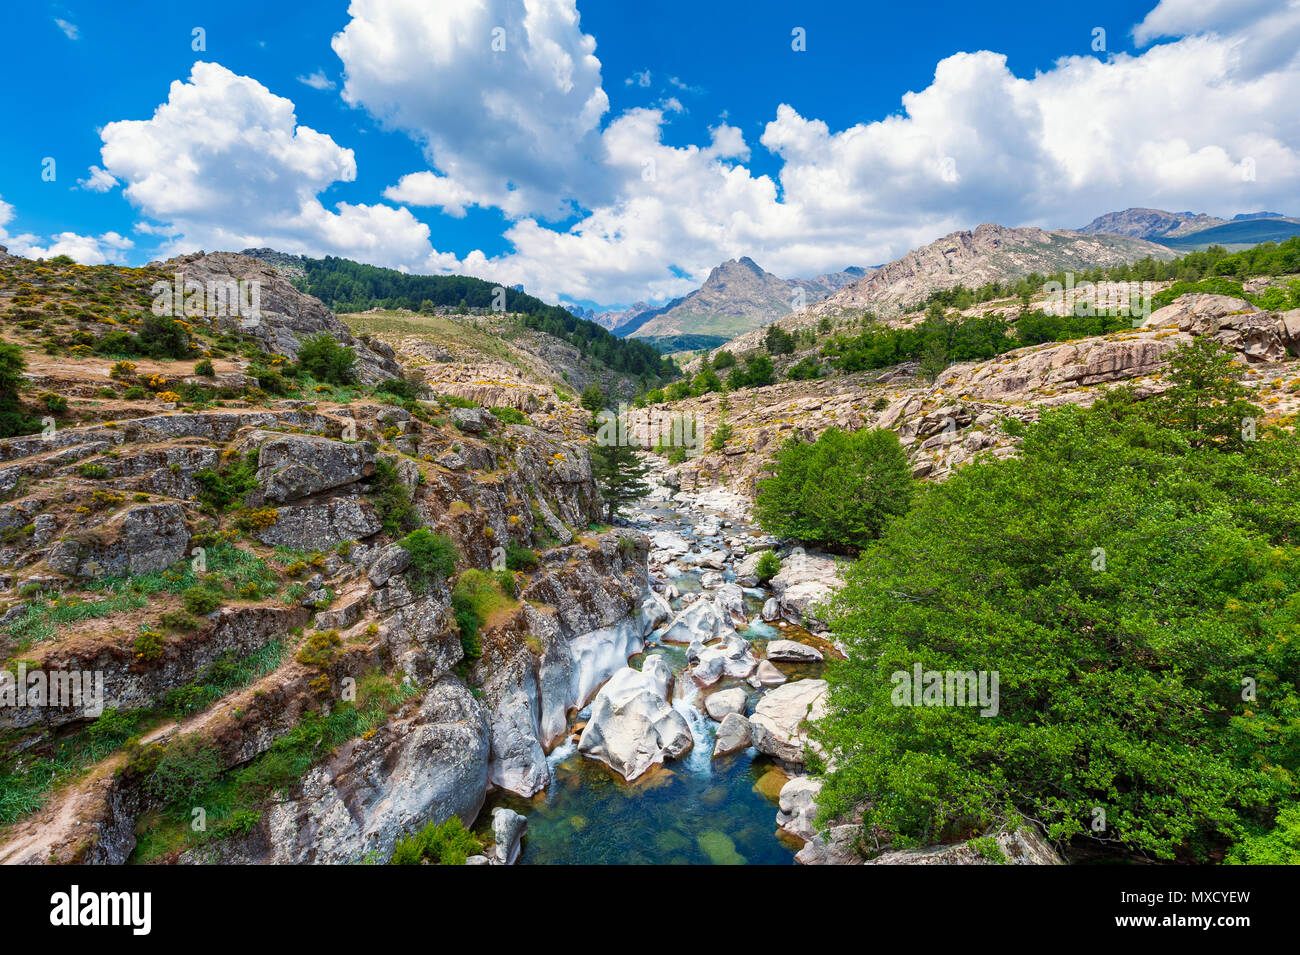 Stream et de montagne en Corse, France au printemps Photo Stock